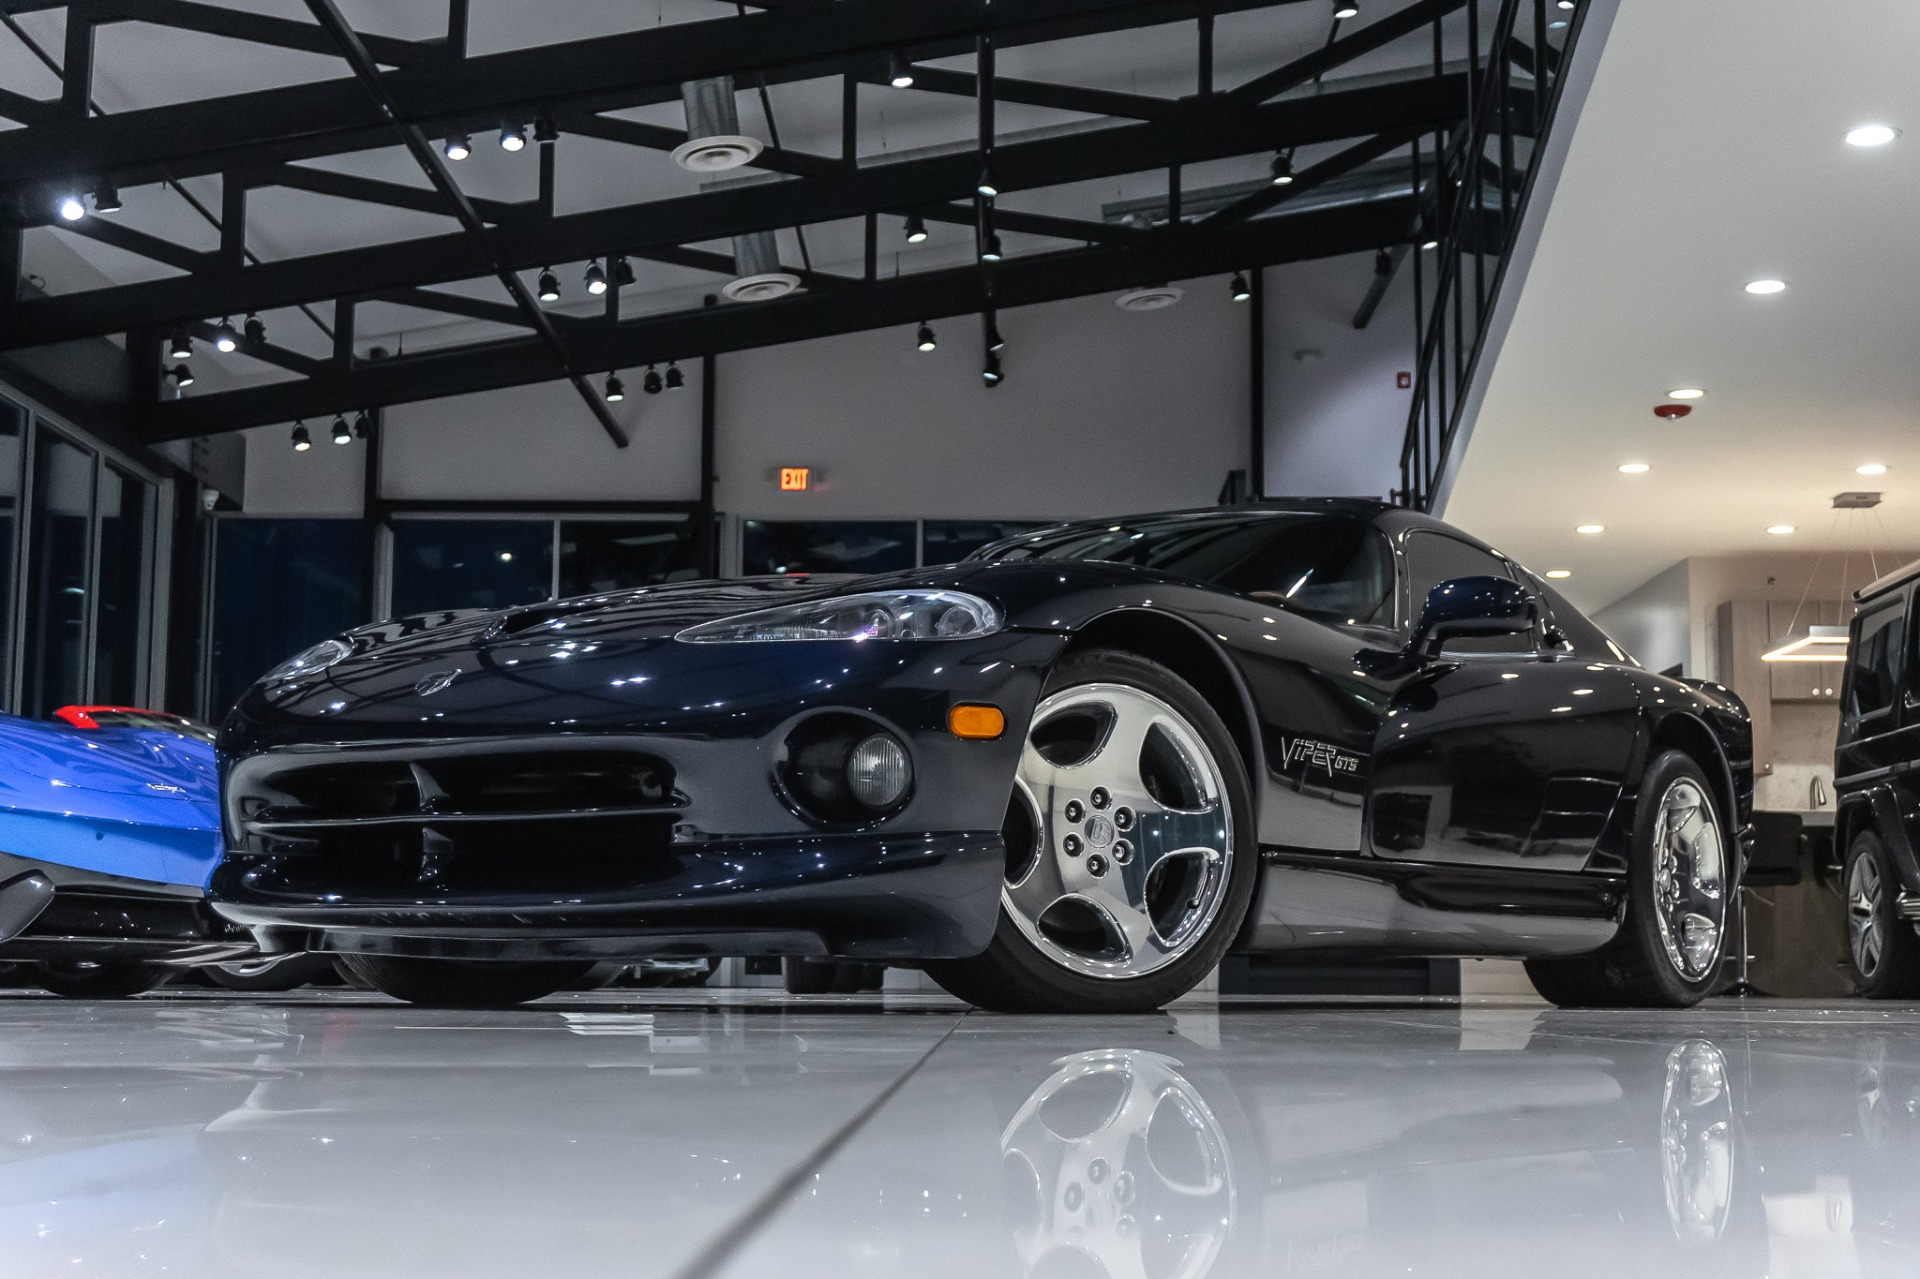 Used-2001-Dodge-Viper-GTS-COUPE-COLLECTOR-CAR-ONLY-8K-MILES